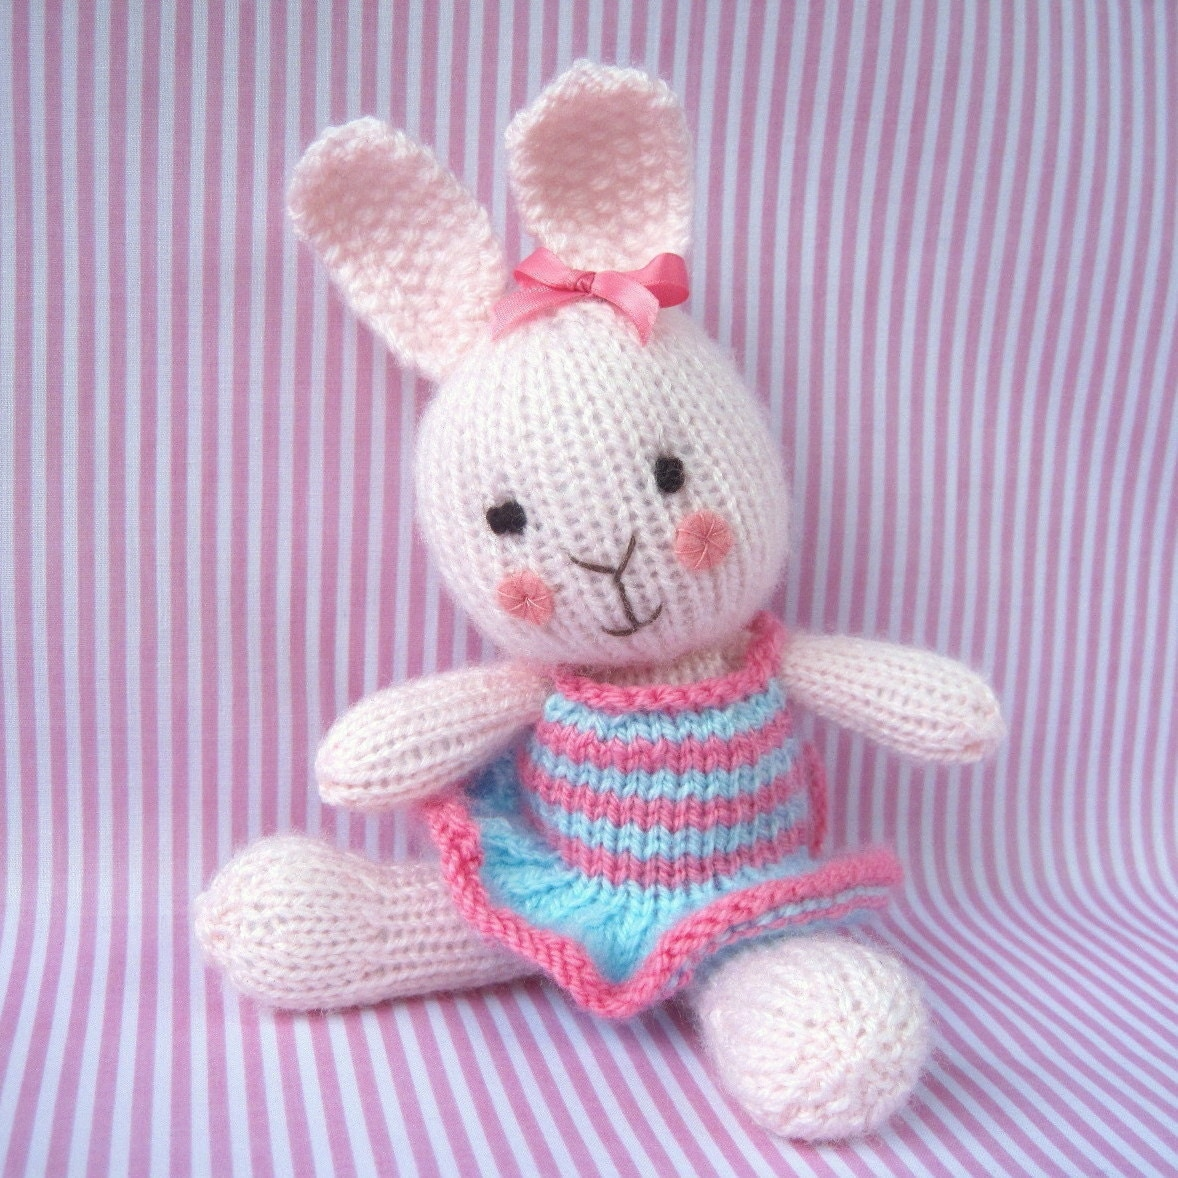 Knit Patterns Infinity Scarf : Candytuft toy bunny rabbit doll knitting pattern PDF